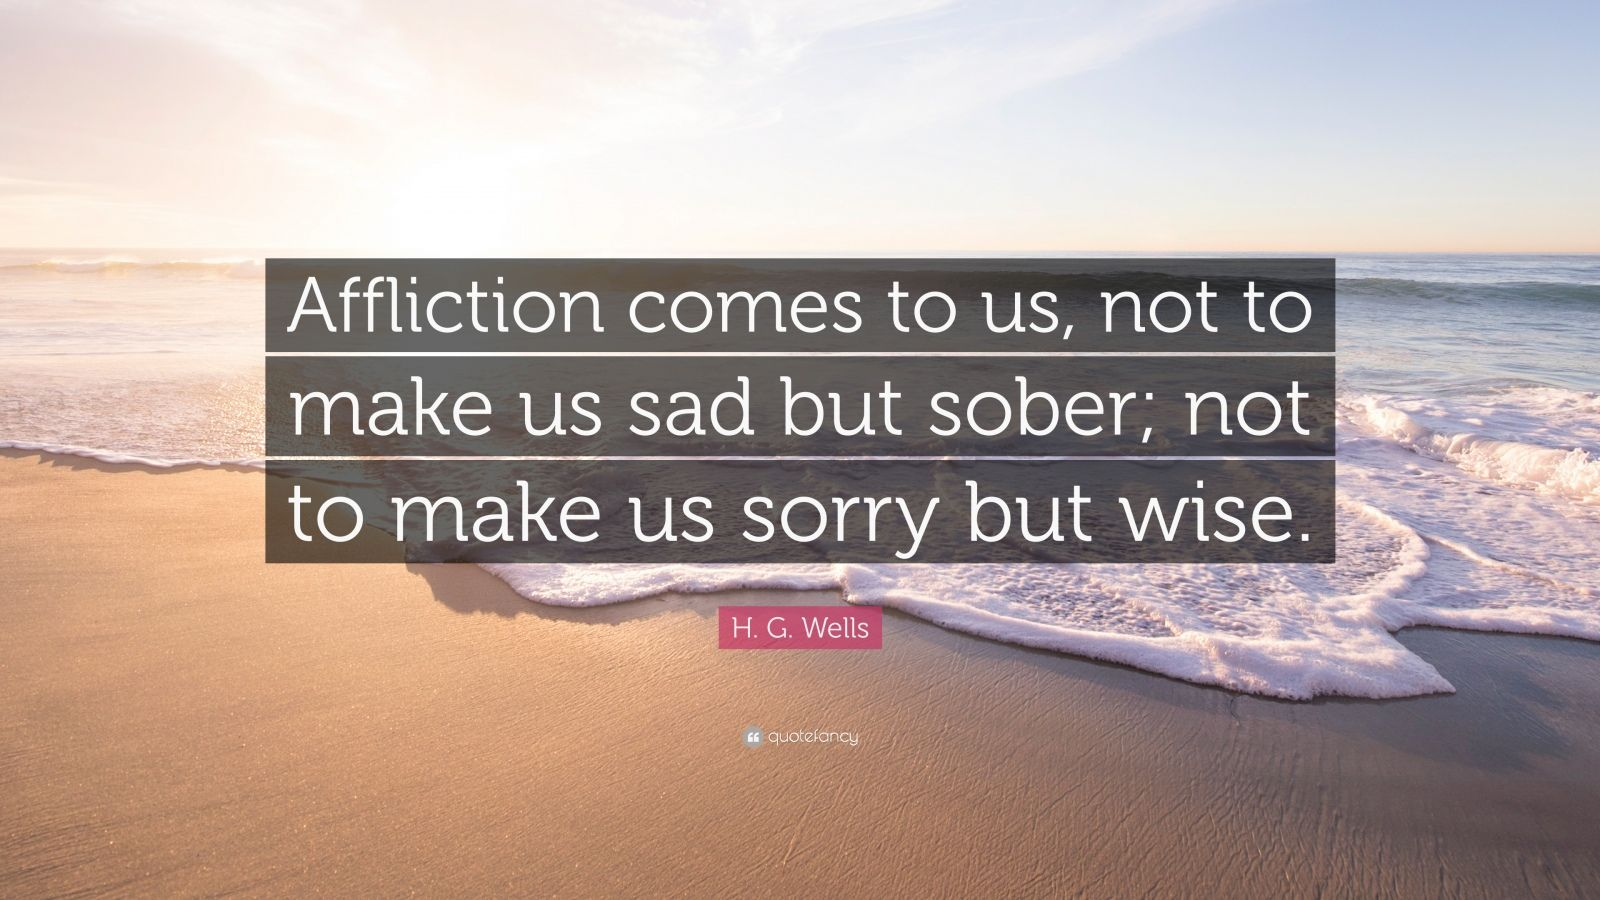 """H. G. Wells Quote: """"Affliction comes to us, not to make us sad but sober; not to make us sorry but wise."""""""